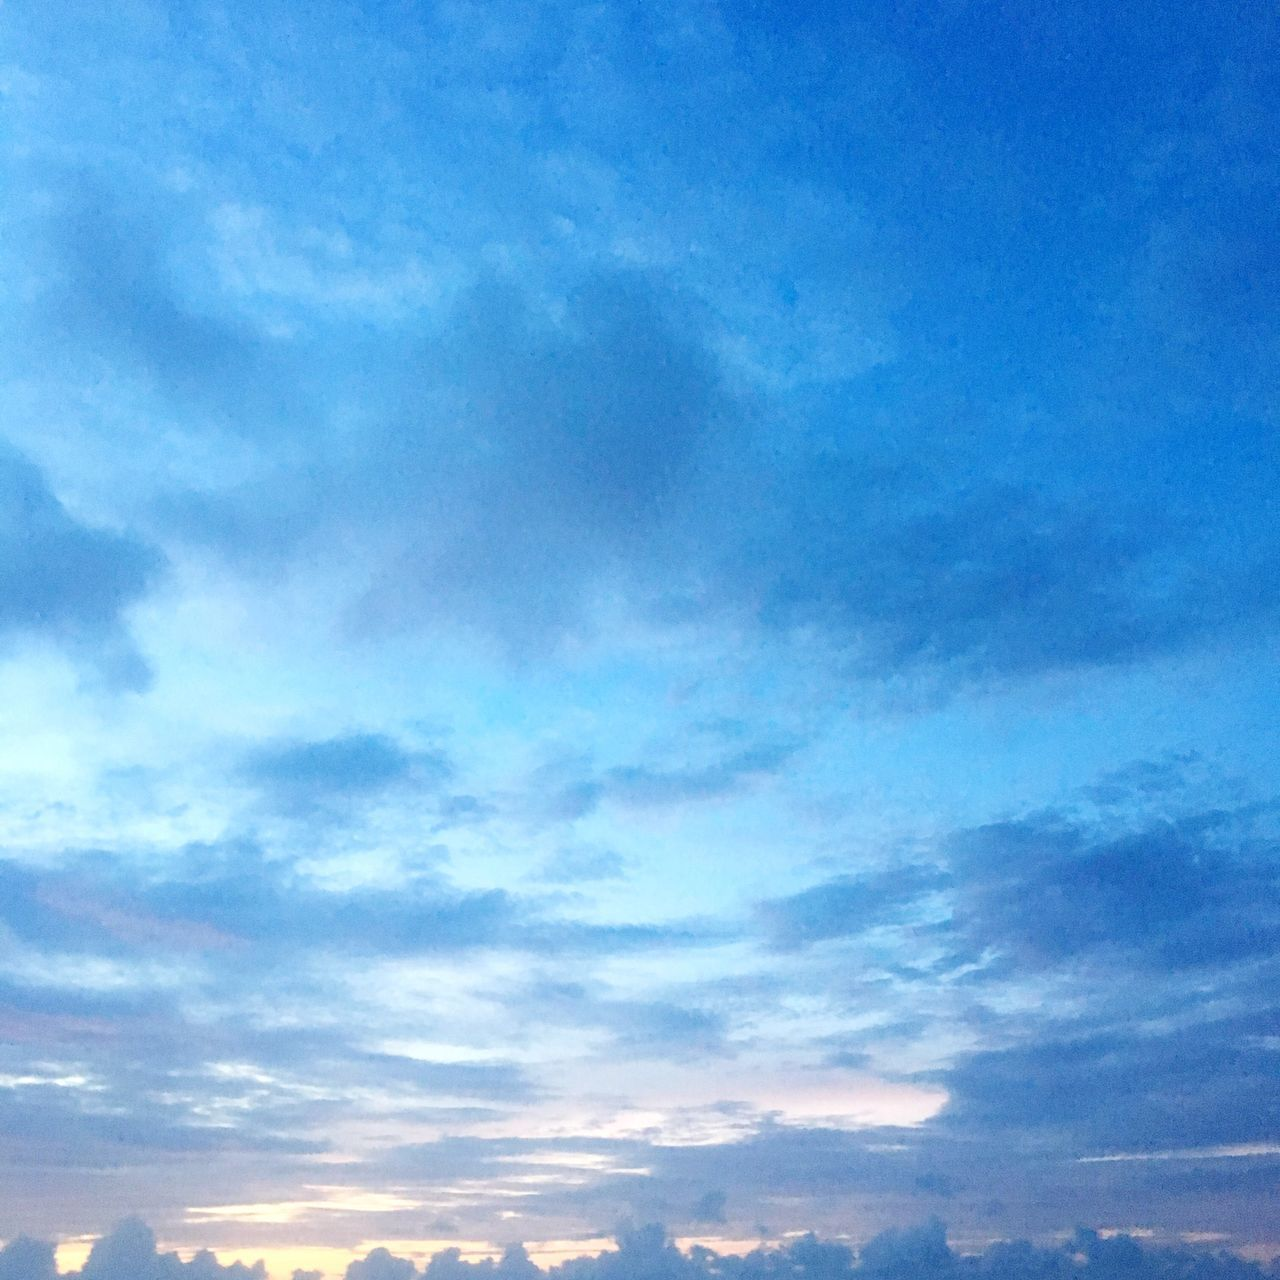 blue, sky, no people, backgrounds, nature, cloud - sky, low angle view, scenics, beauty in nature, outdoors, day